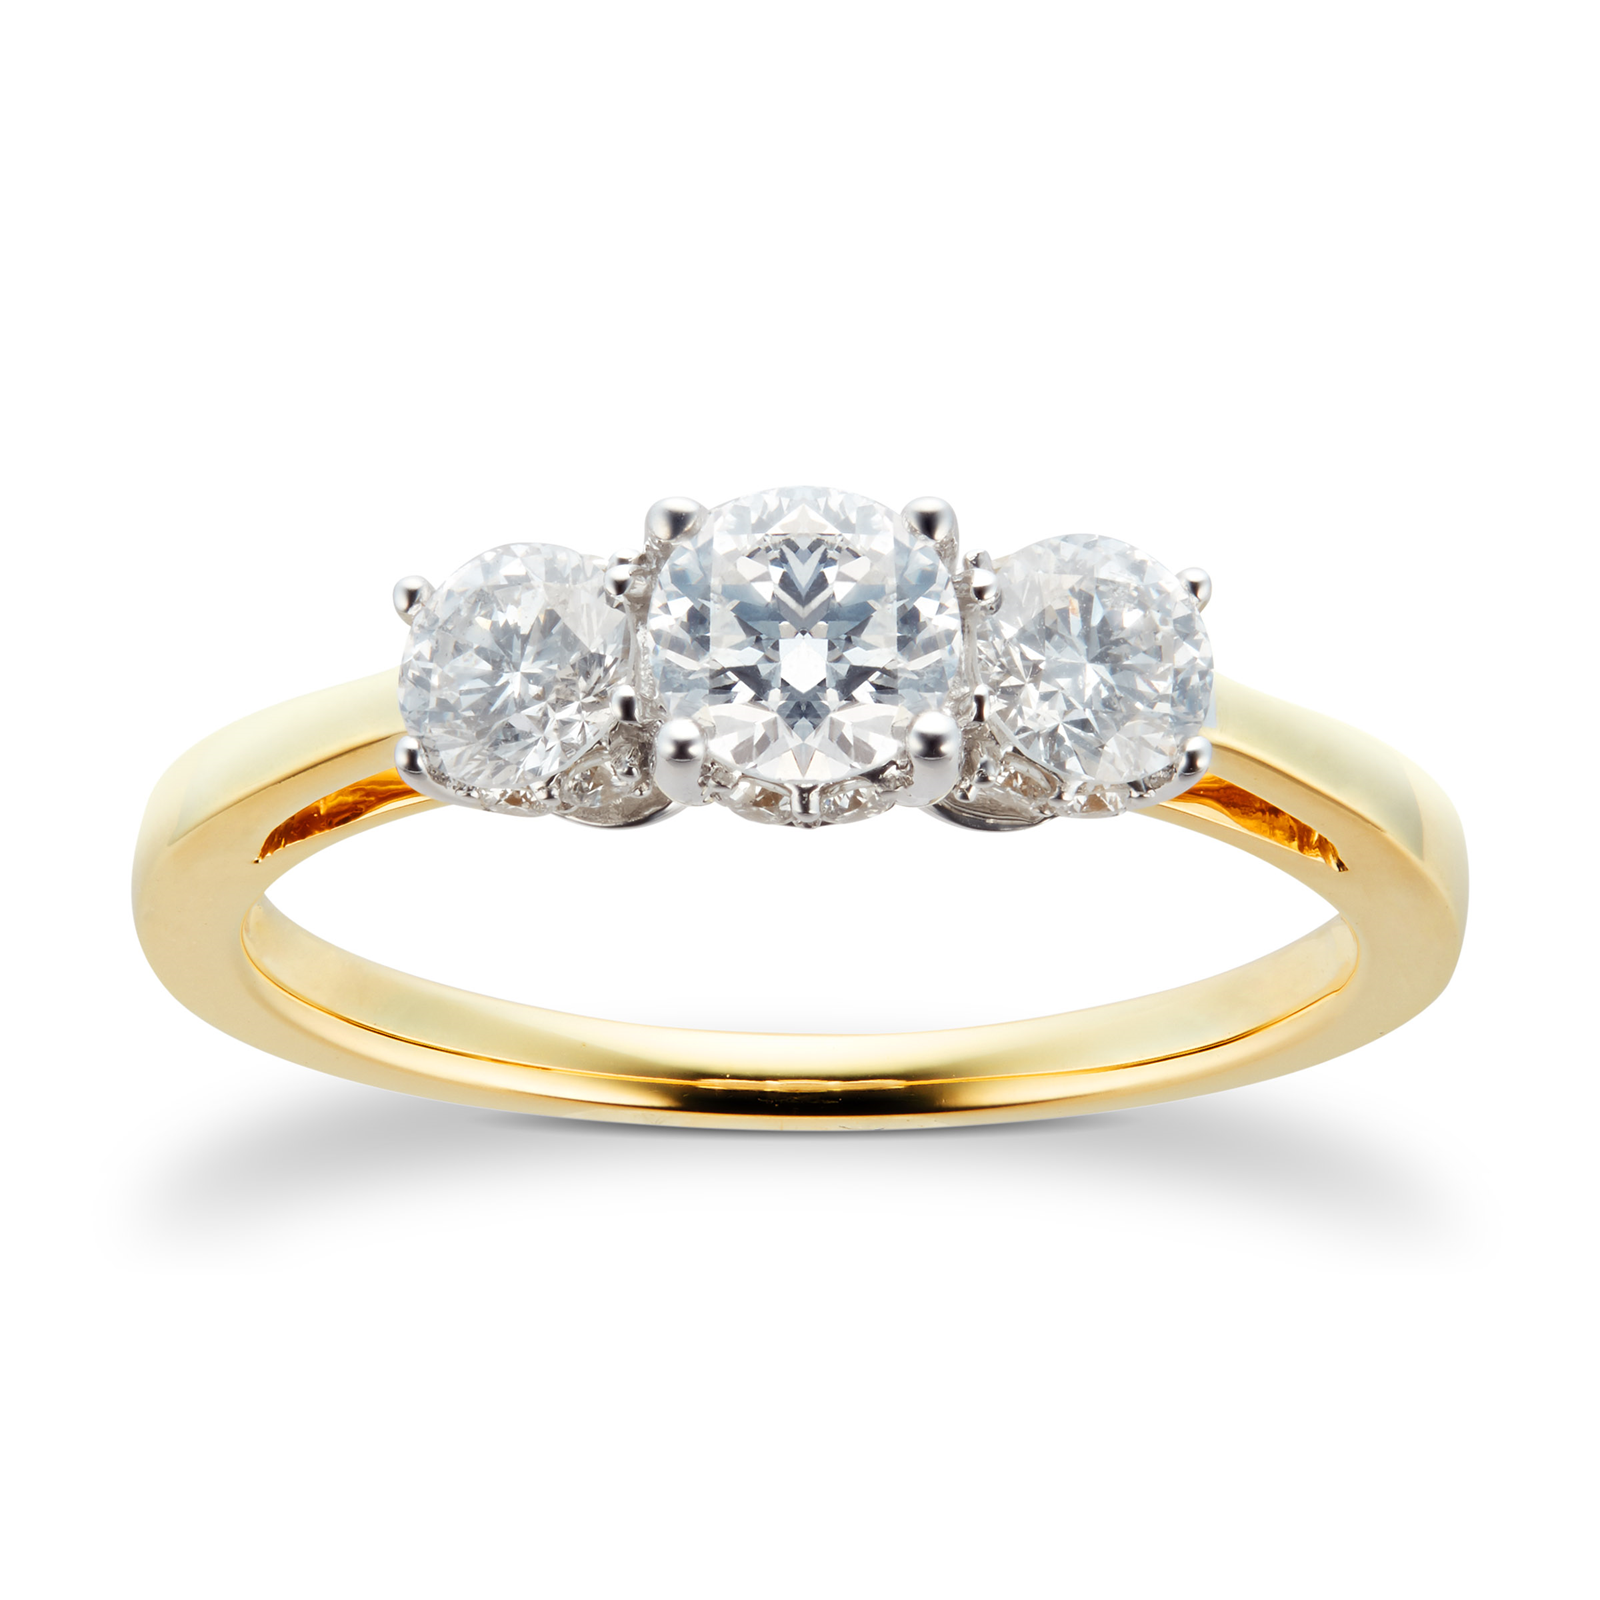 15db4fe688d7d4 18ct Yellow Gold 1.00 Carat Three Stone 88 Facet Diamond Ring | Rings |  Jewellery | Goldsmiths